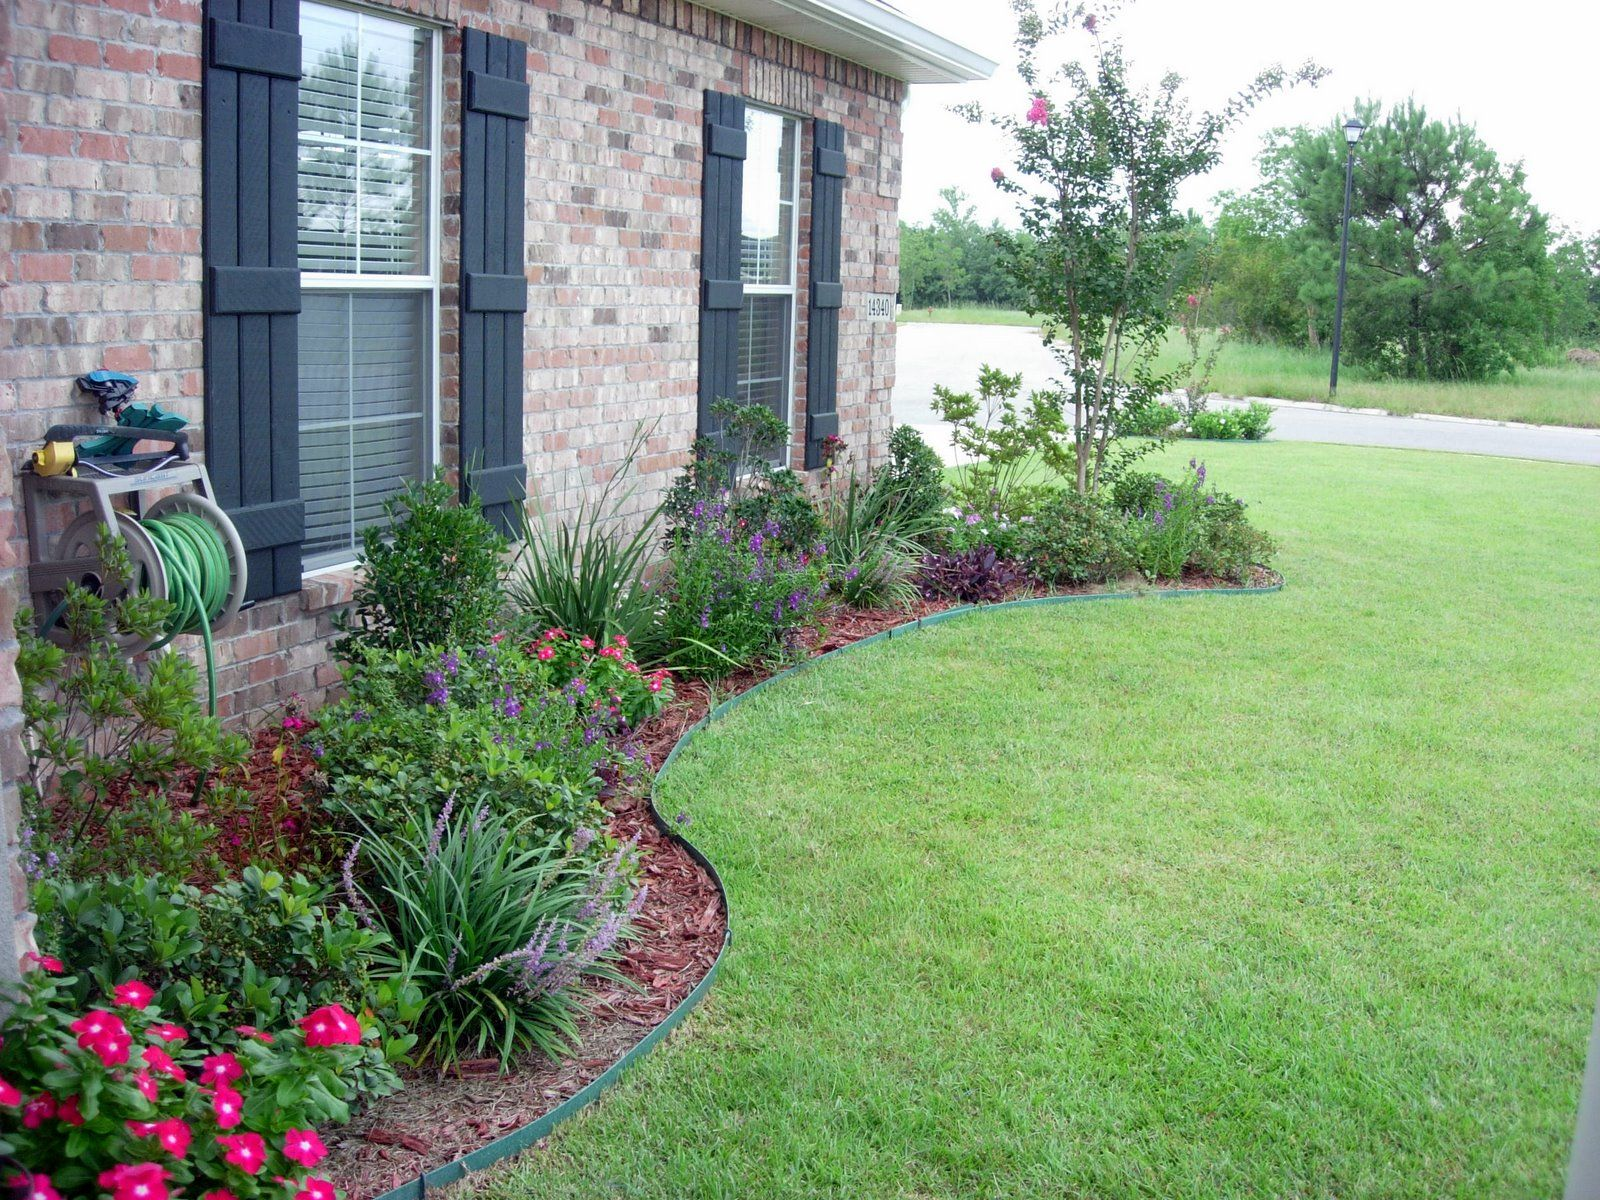 flower bed designs for front of house use shrubs small trees to form the landscape ideas - Landscaping Design Ideas For Front Of House